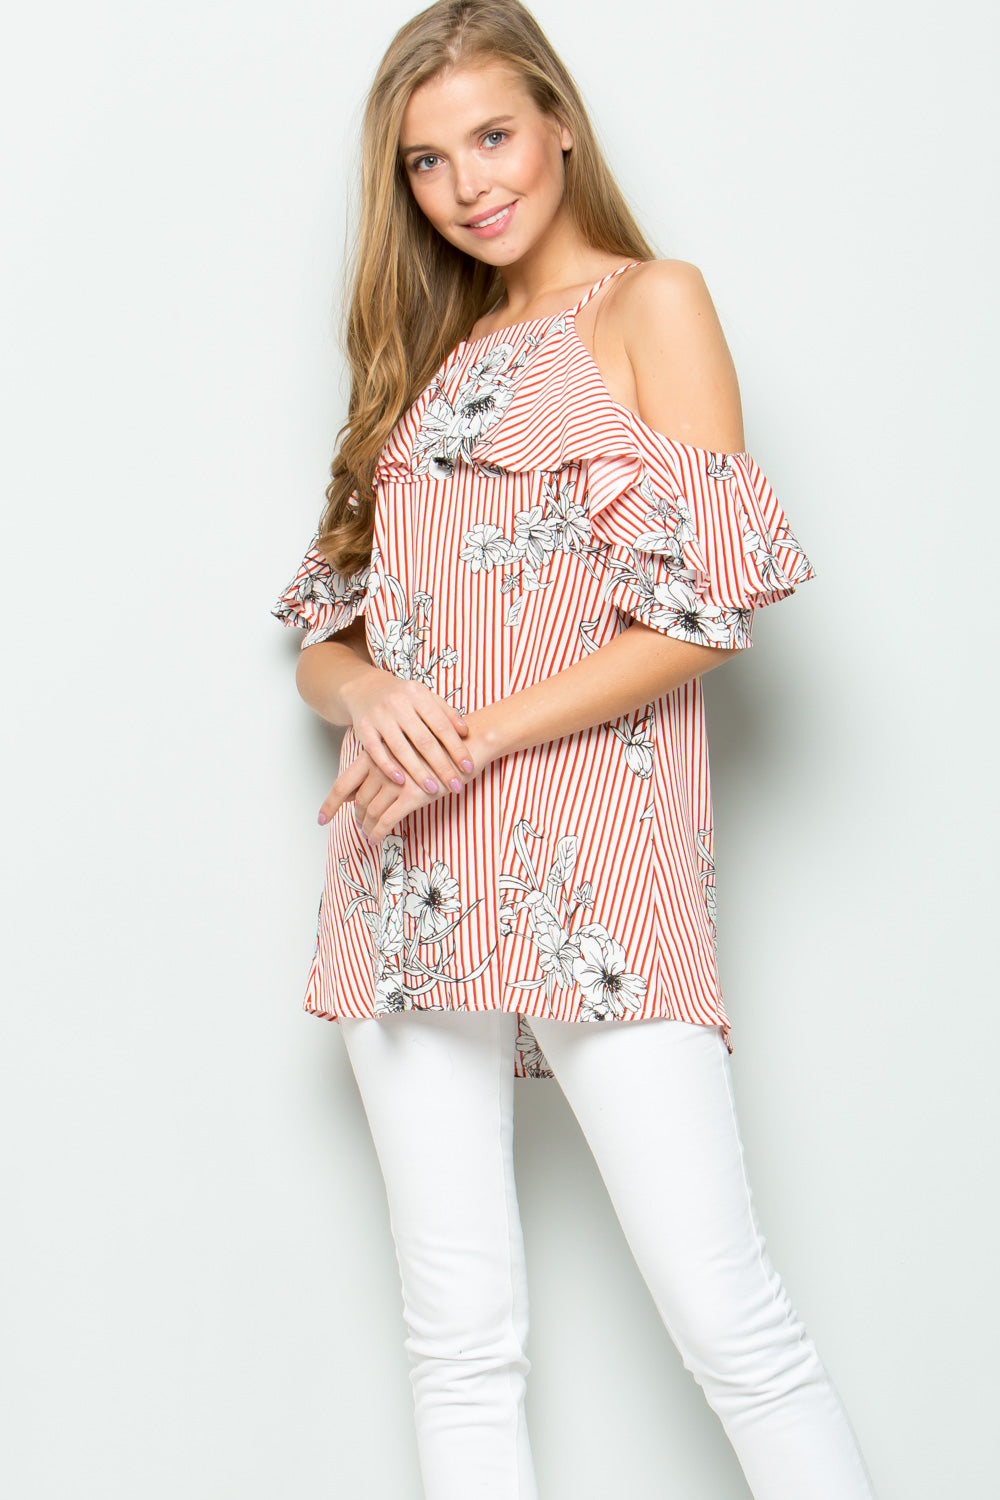 Floral+Stripe Ruffle Cold Shoulder Blouse - Red